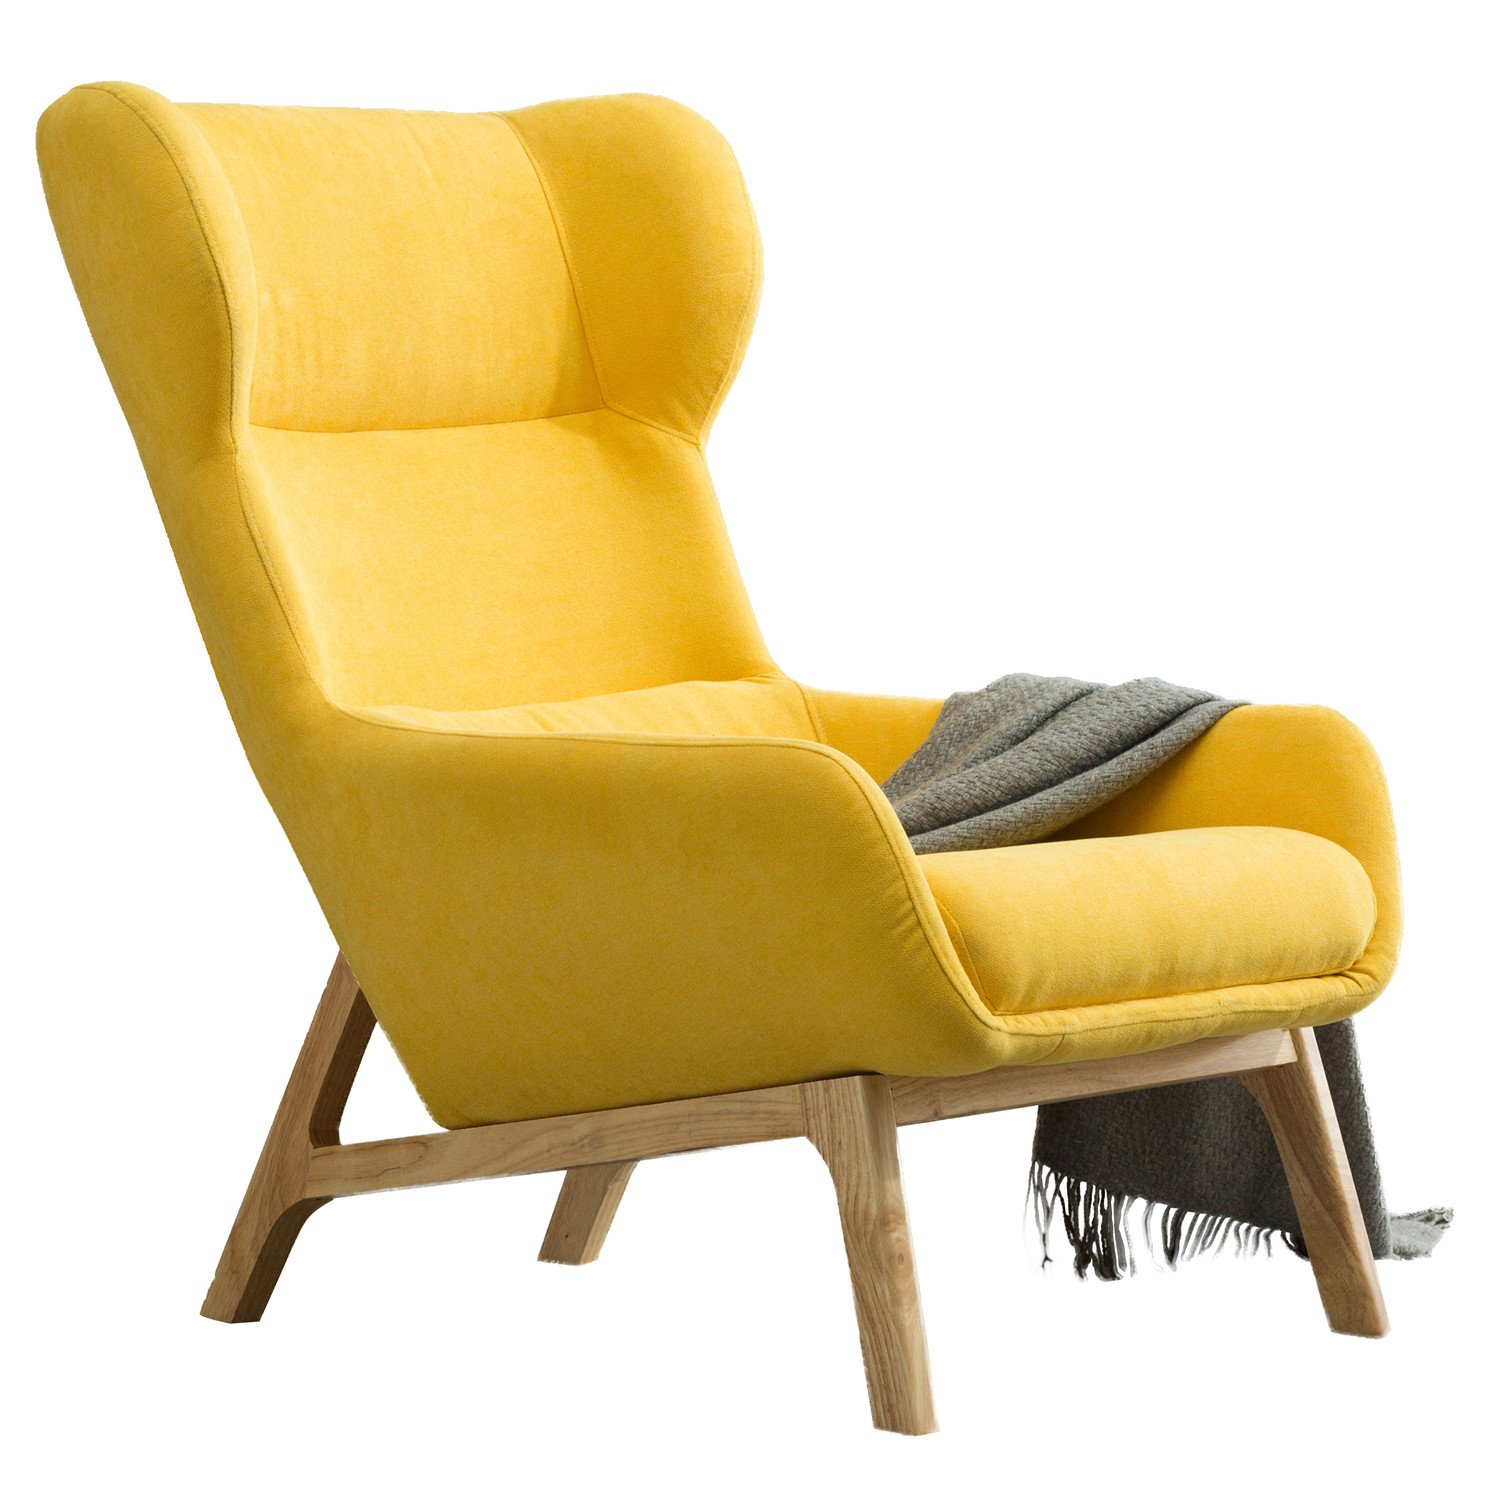 Irene House Contemporary Velvet Fabric Height Back Accent Chair,Living Room,Bedroom Arm Chair (Yellow) by Irene House